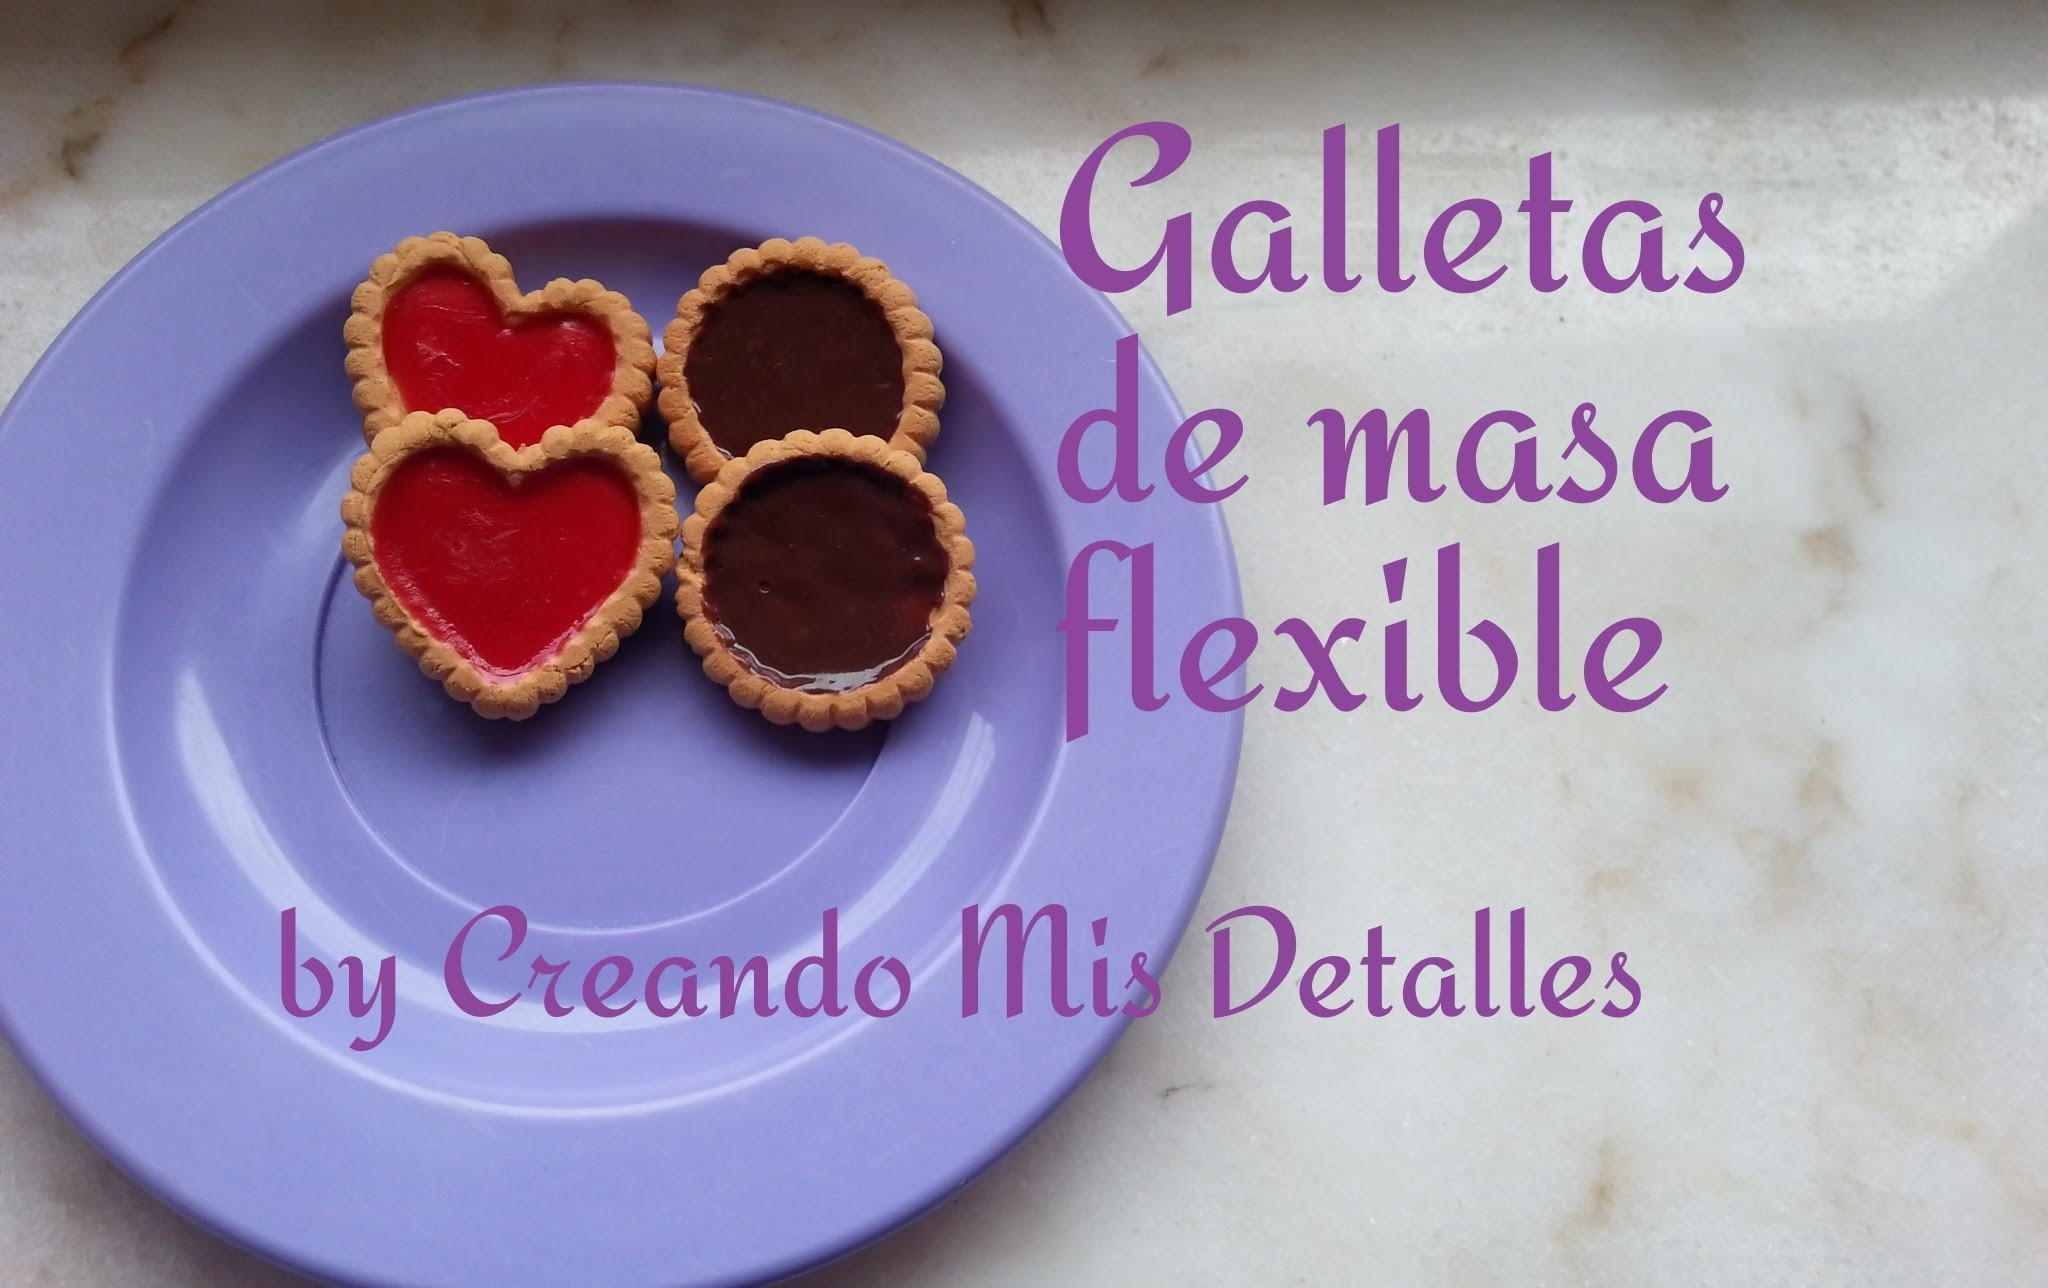 DIY Galletas de masa flexible Sweets Deco - Air dry clay deco biscuit